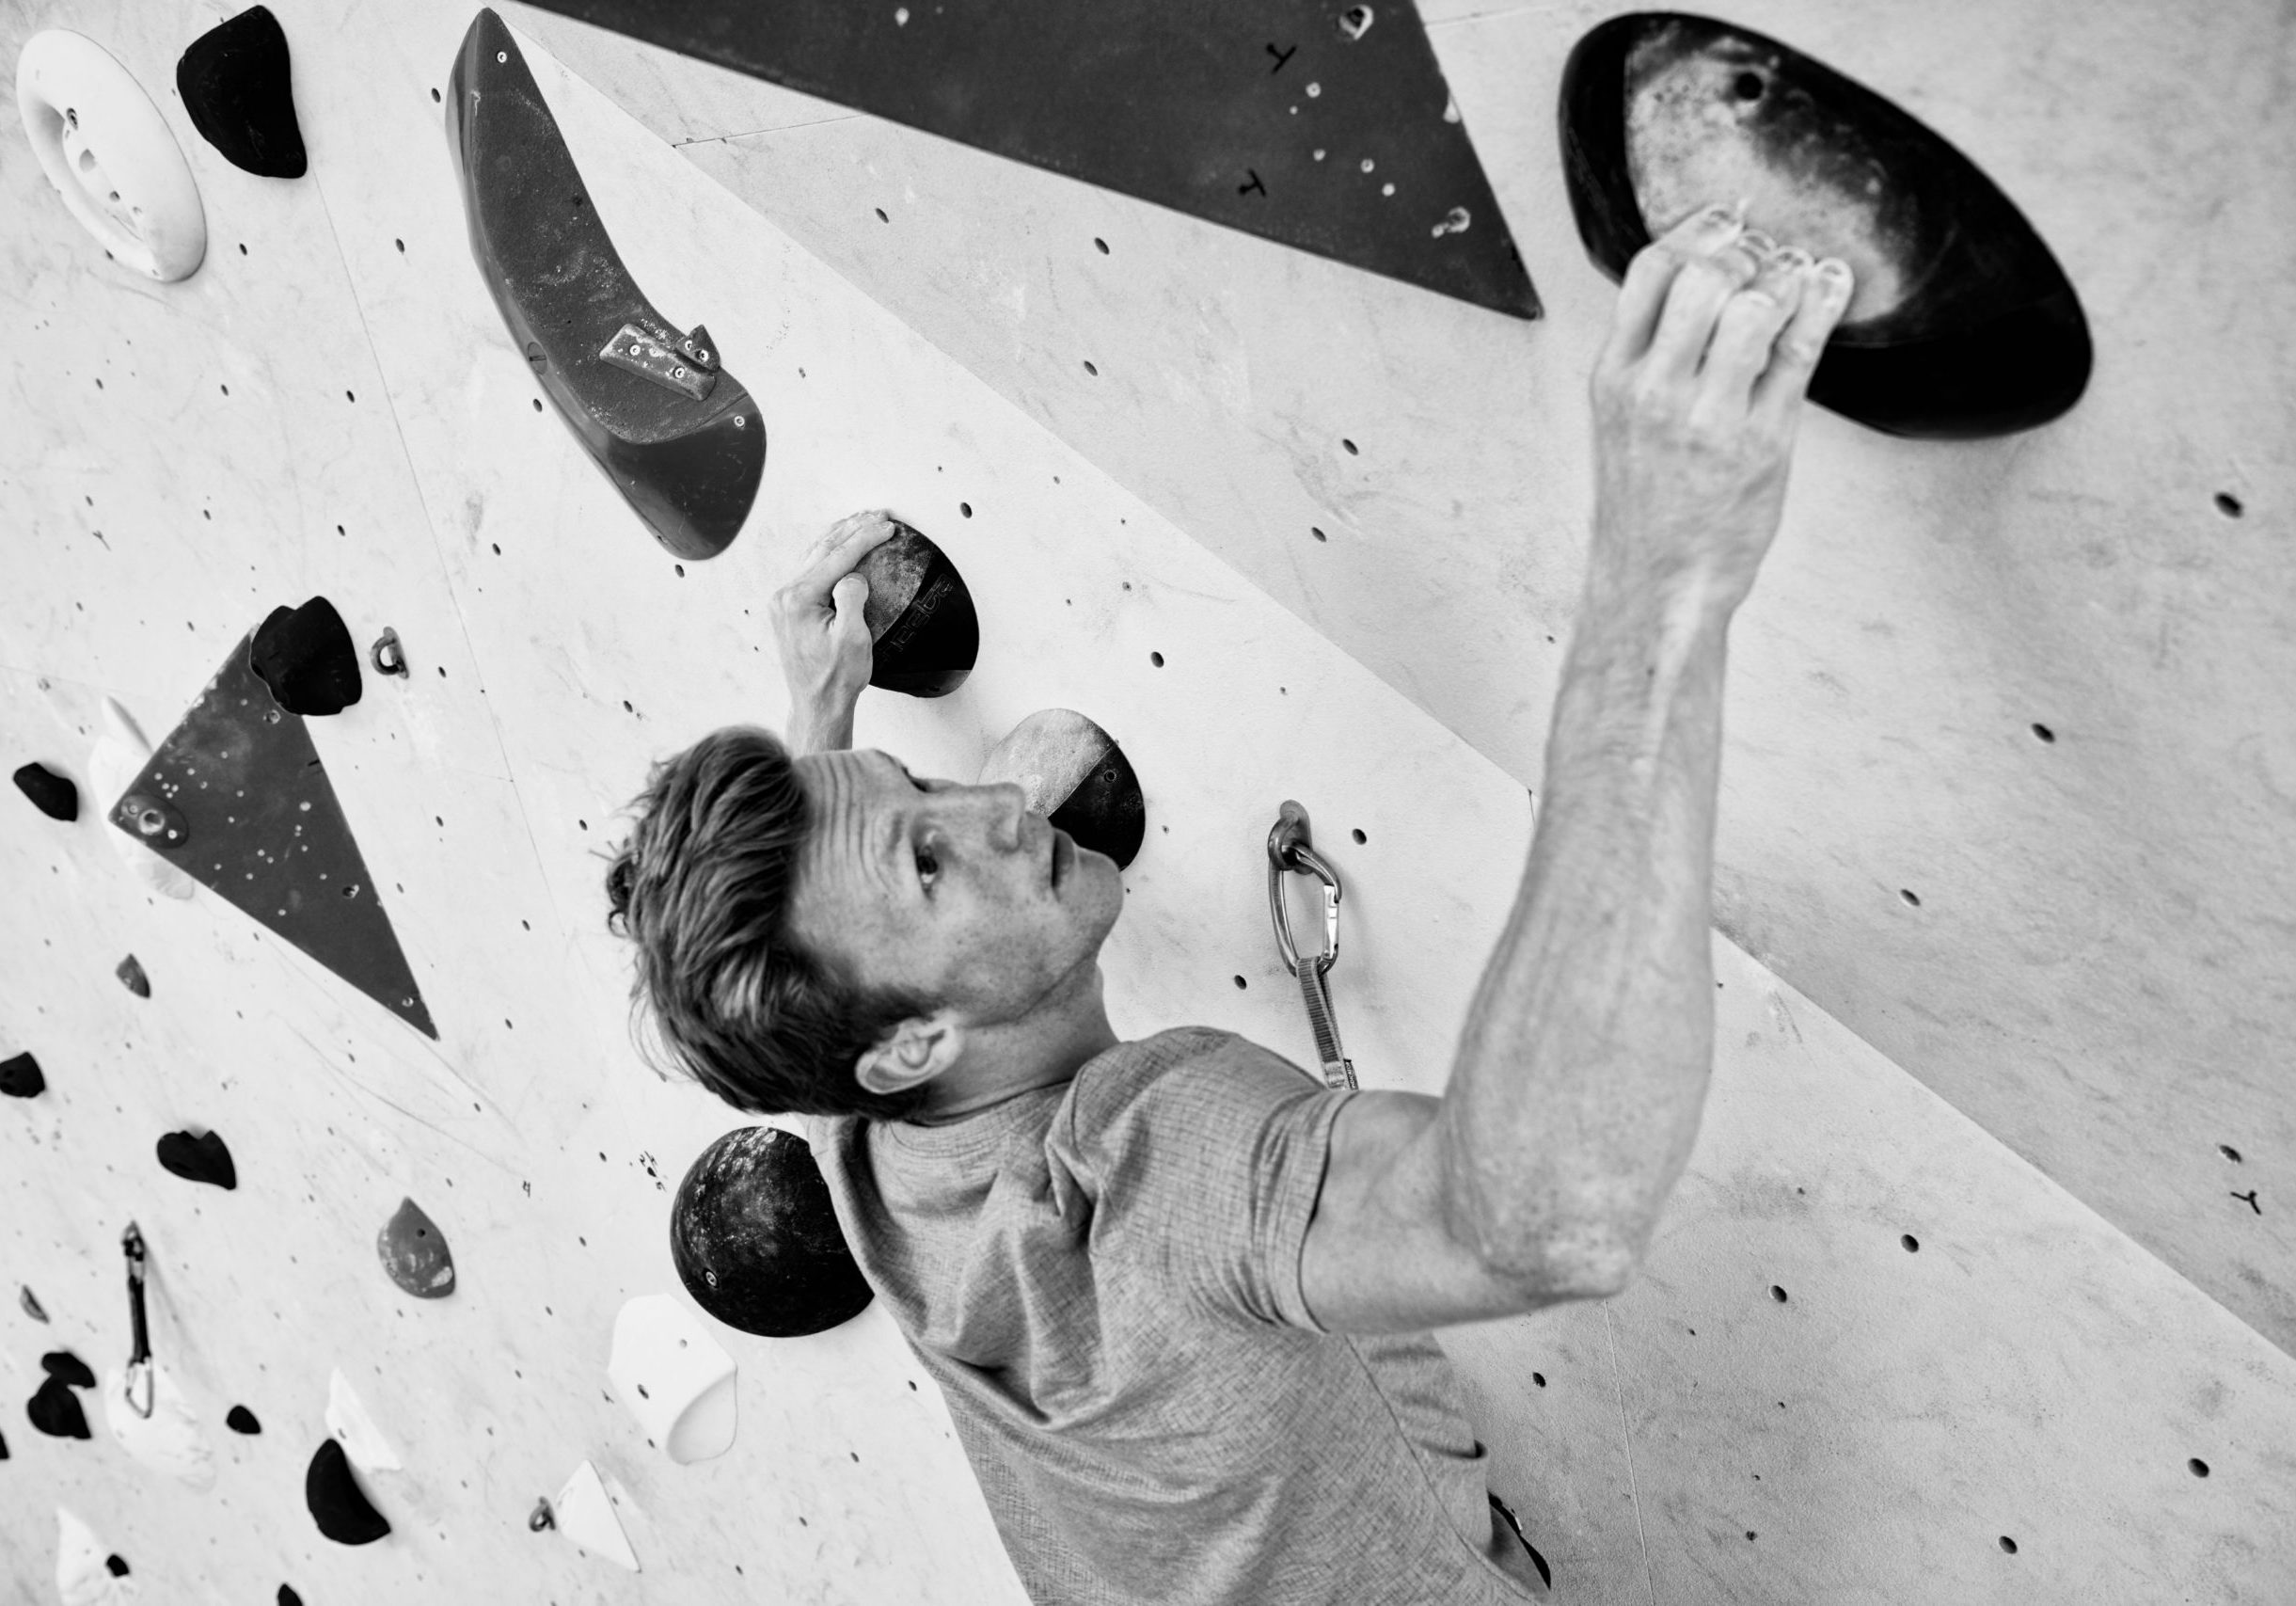 Jakob Schubert, Climbing Pro Team Athlete, Bouldern, Kollektion Winter 19/20, Collection Winter 19/20, Kletterhalle